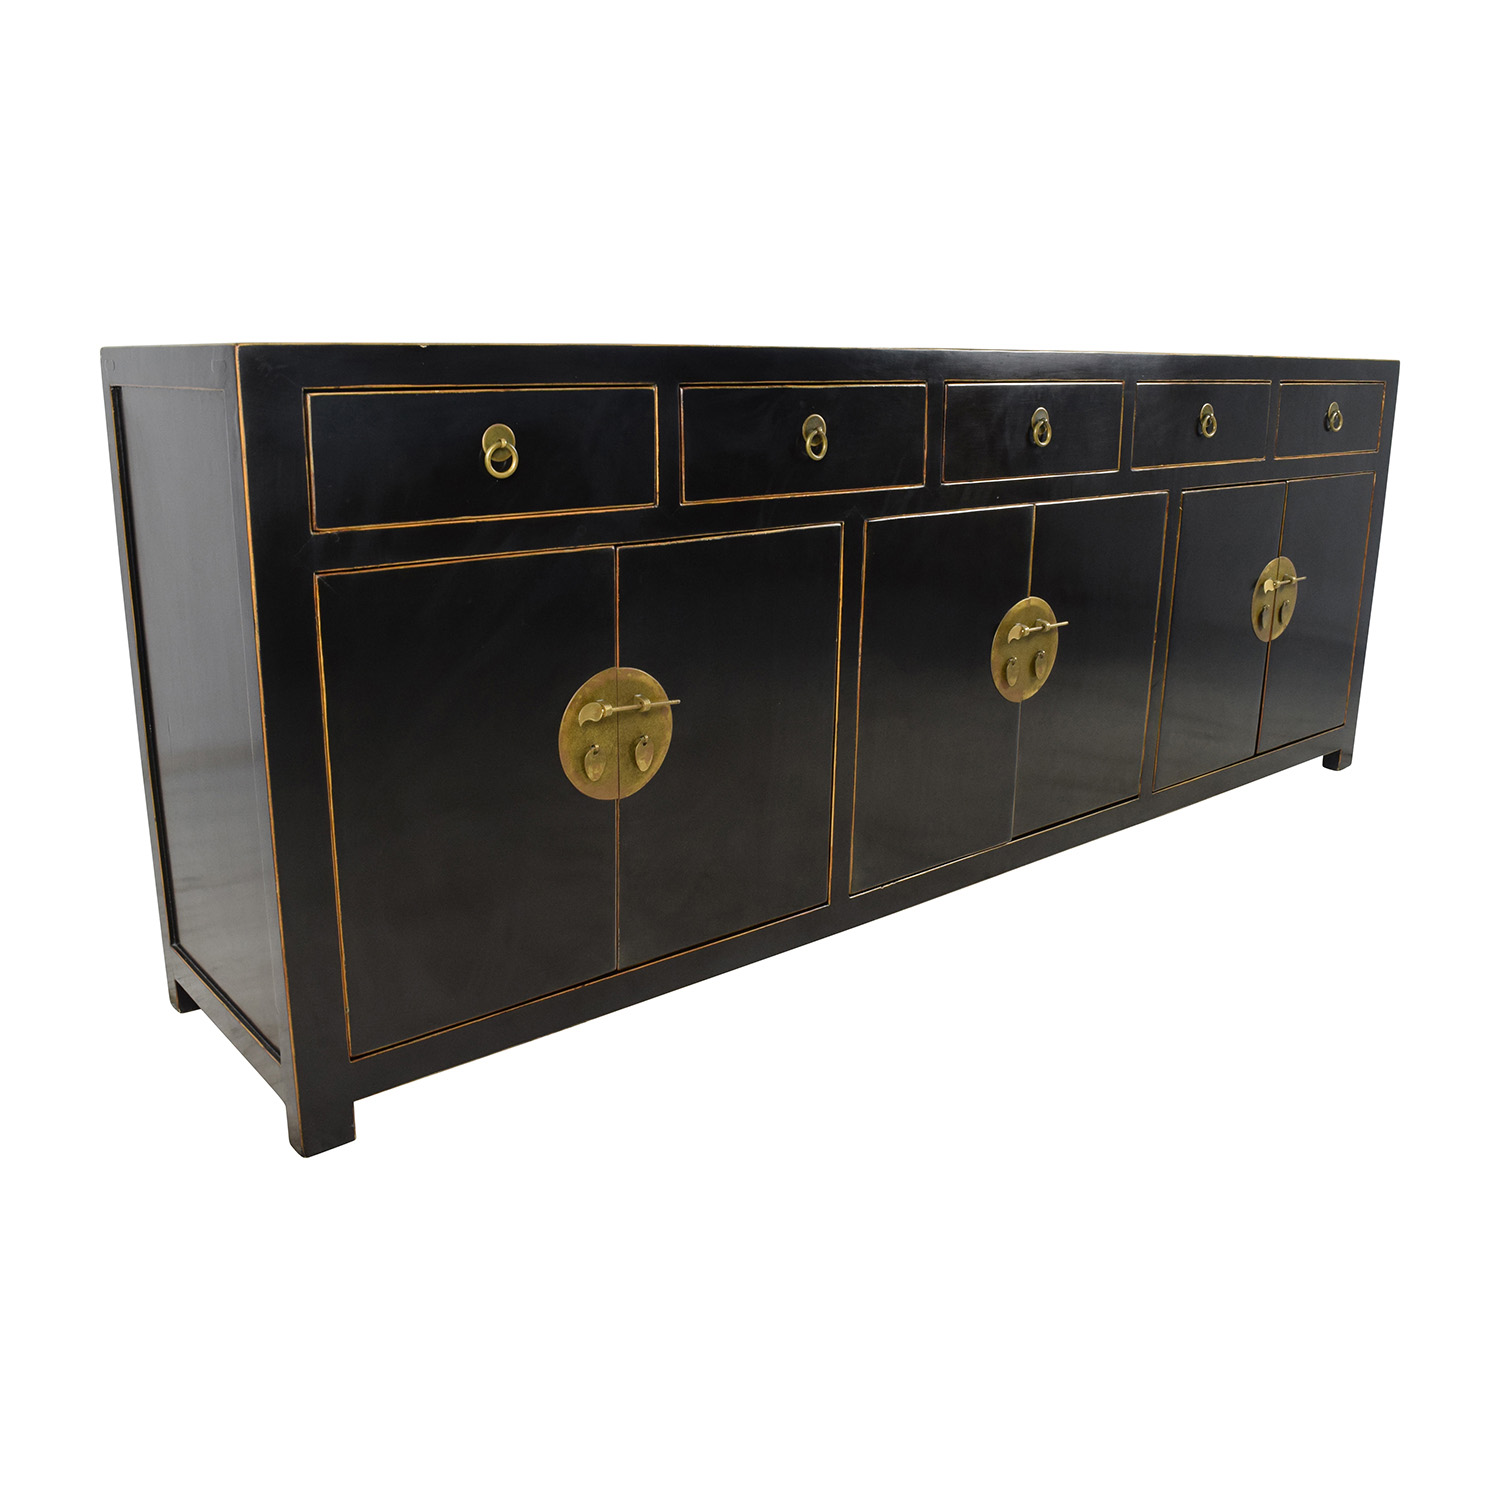 85% OFF Custom Made Black Drawer and Cabinet Sideboard Storage